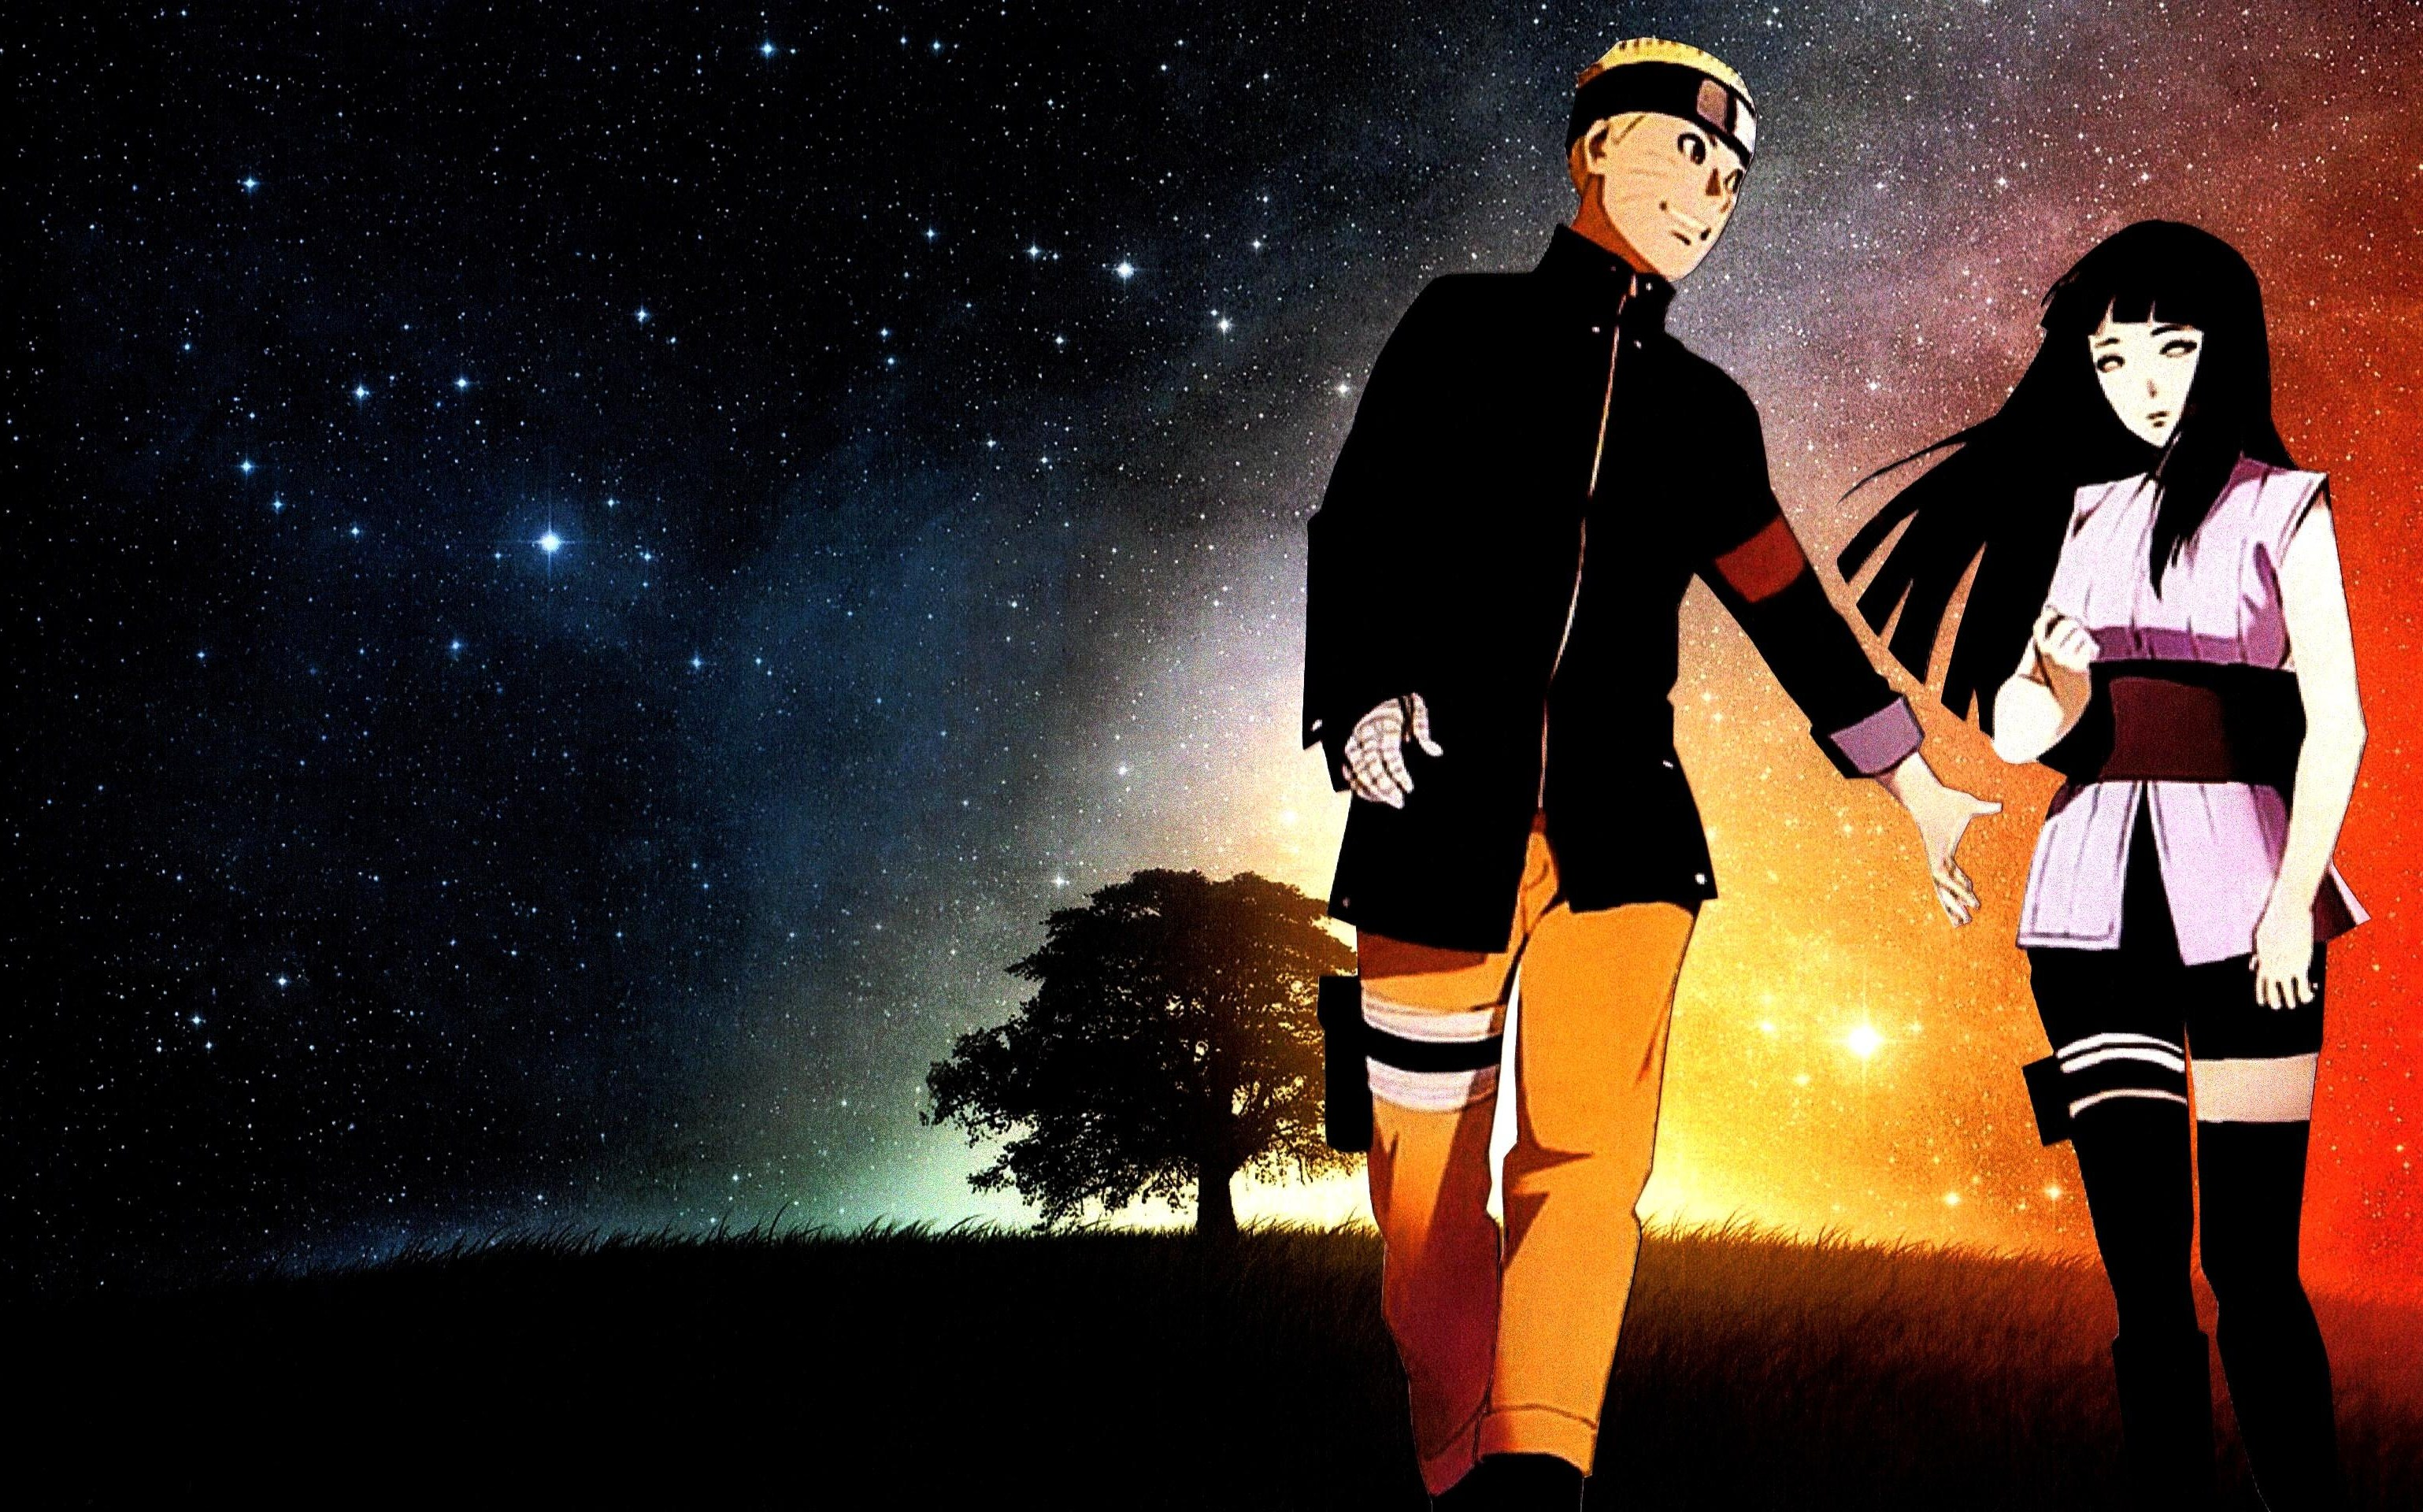 Naruto and Hinata The Last Wallpaper 5 by weissdrum 3077x1920